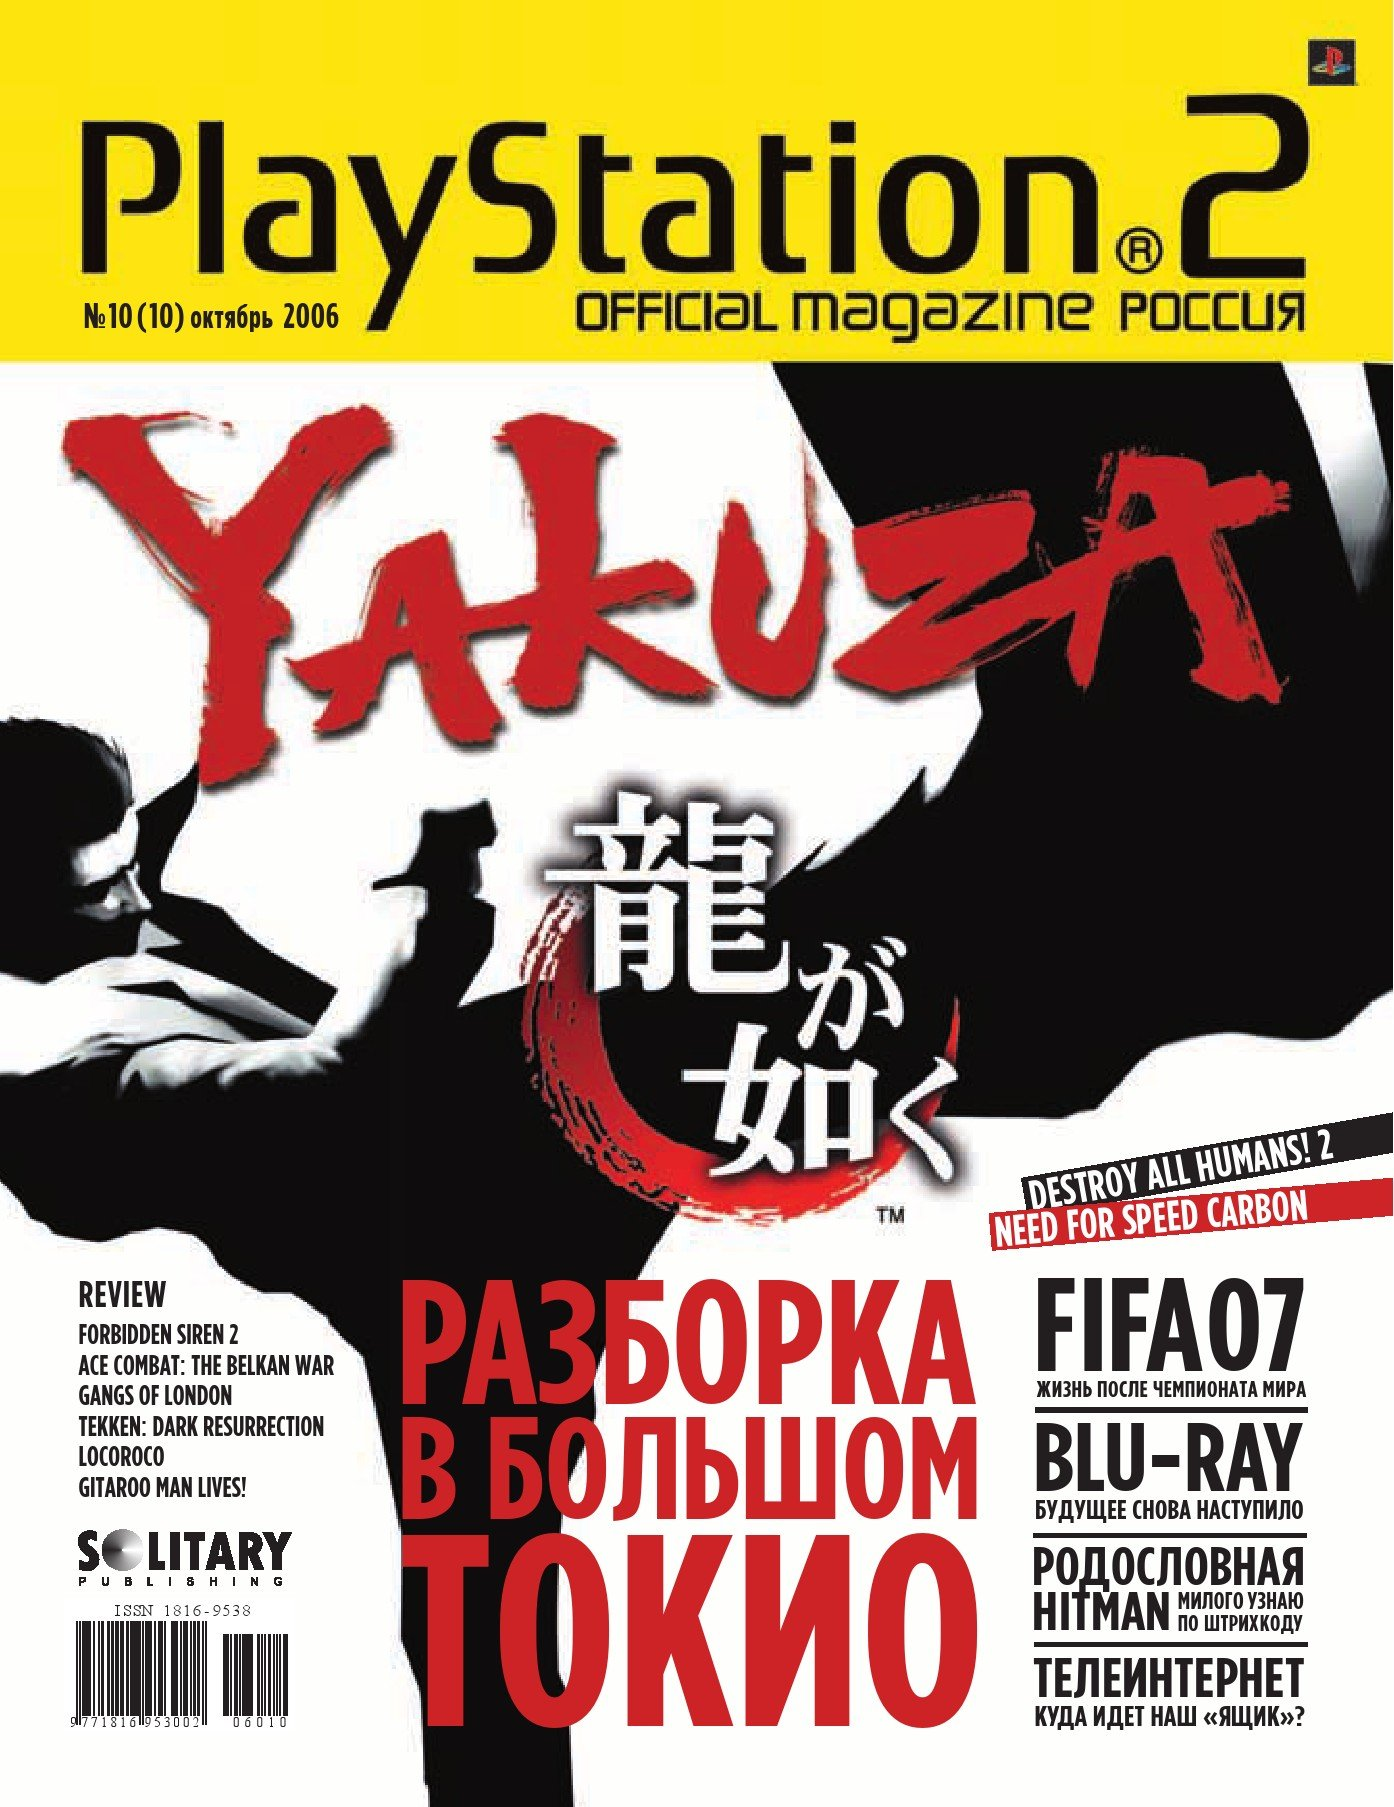 Playstation 2 Official Magazine (Russia) Issue 10 - Oct. '06